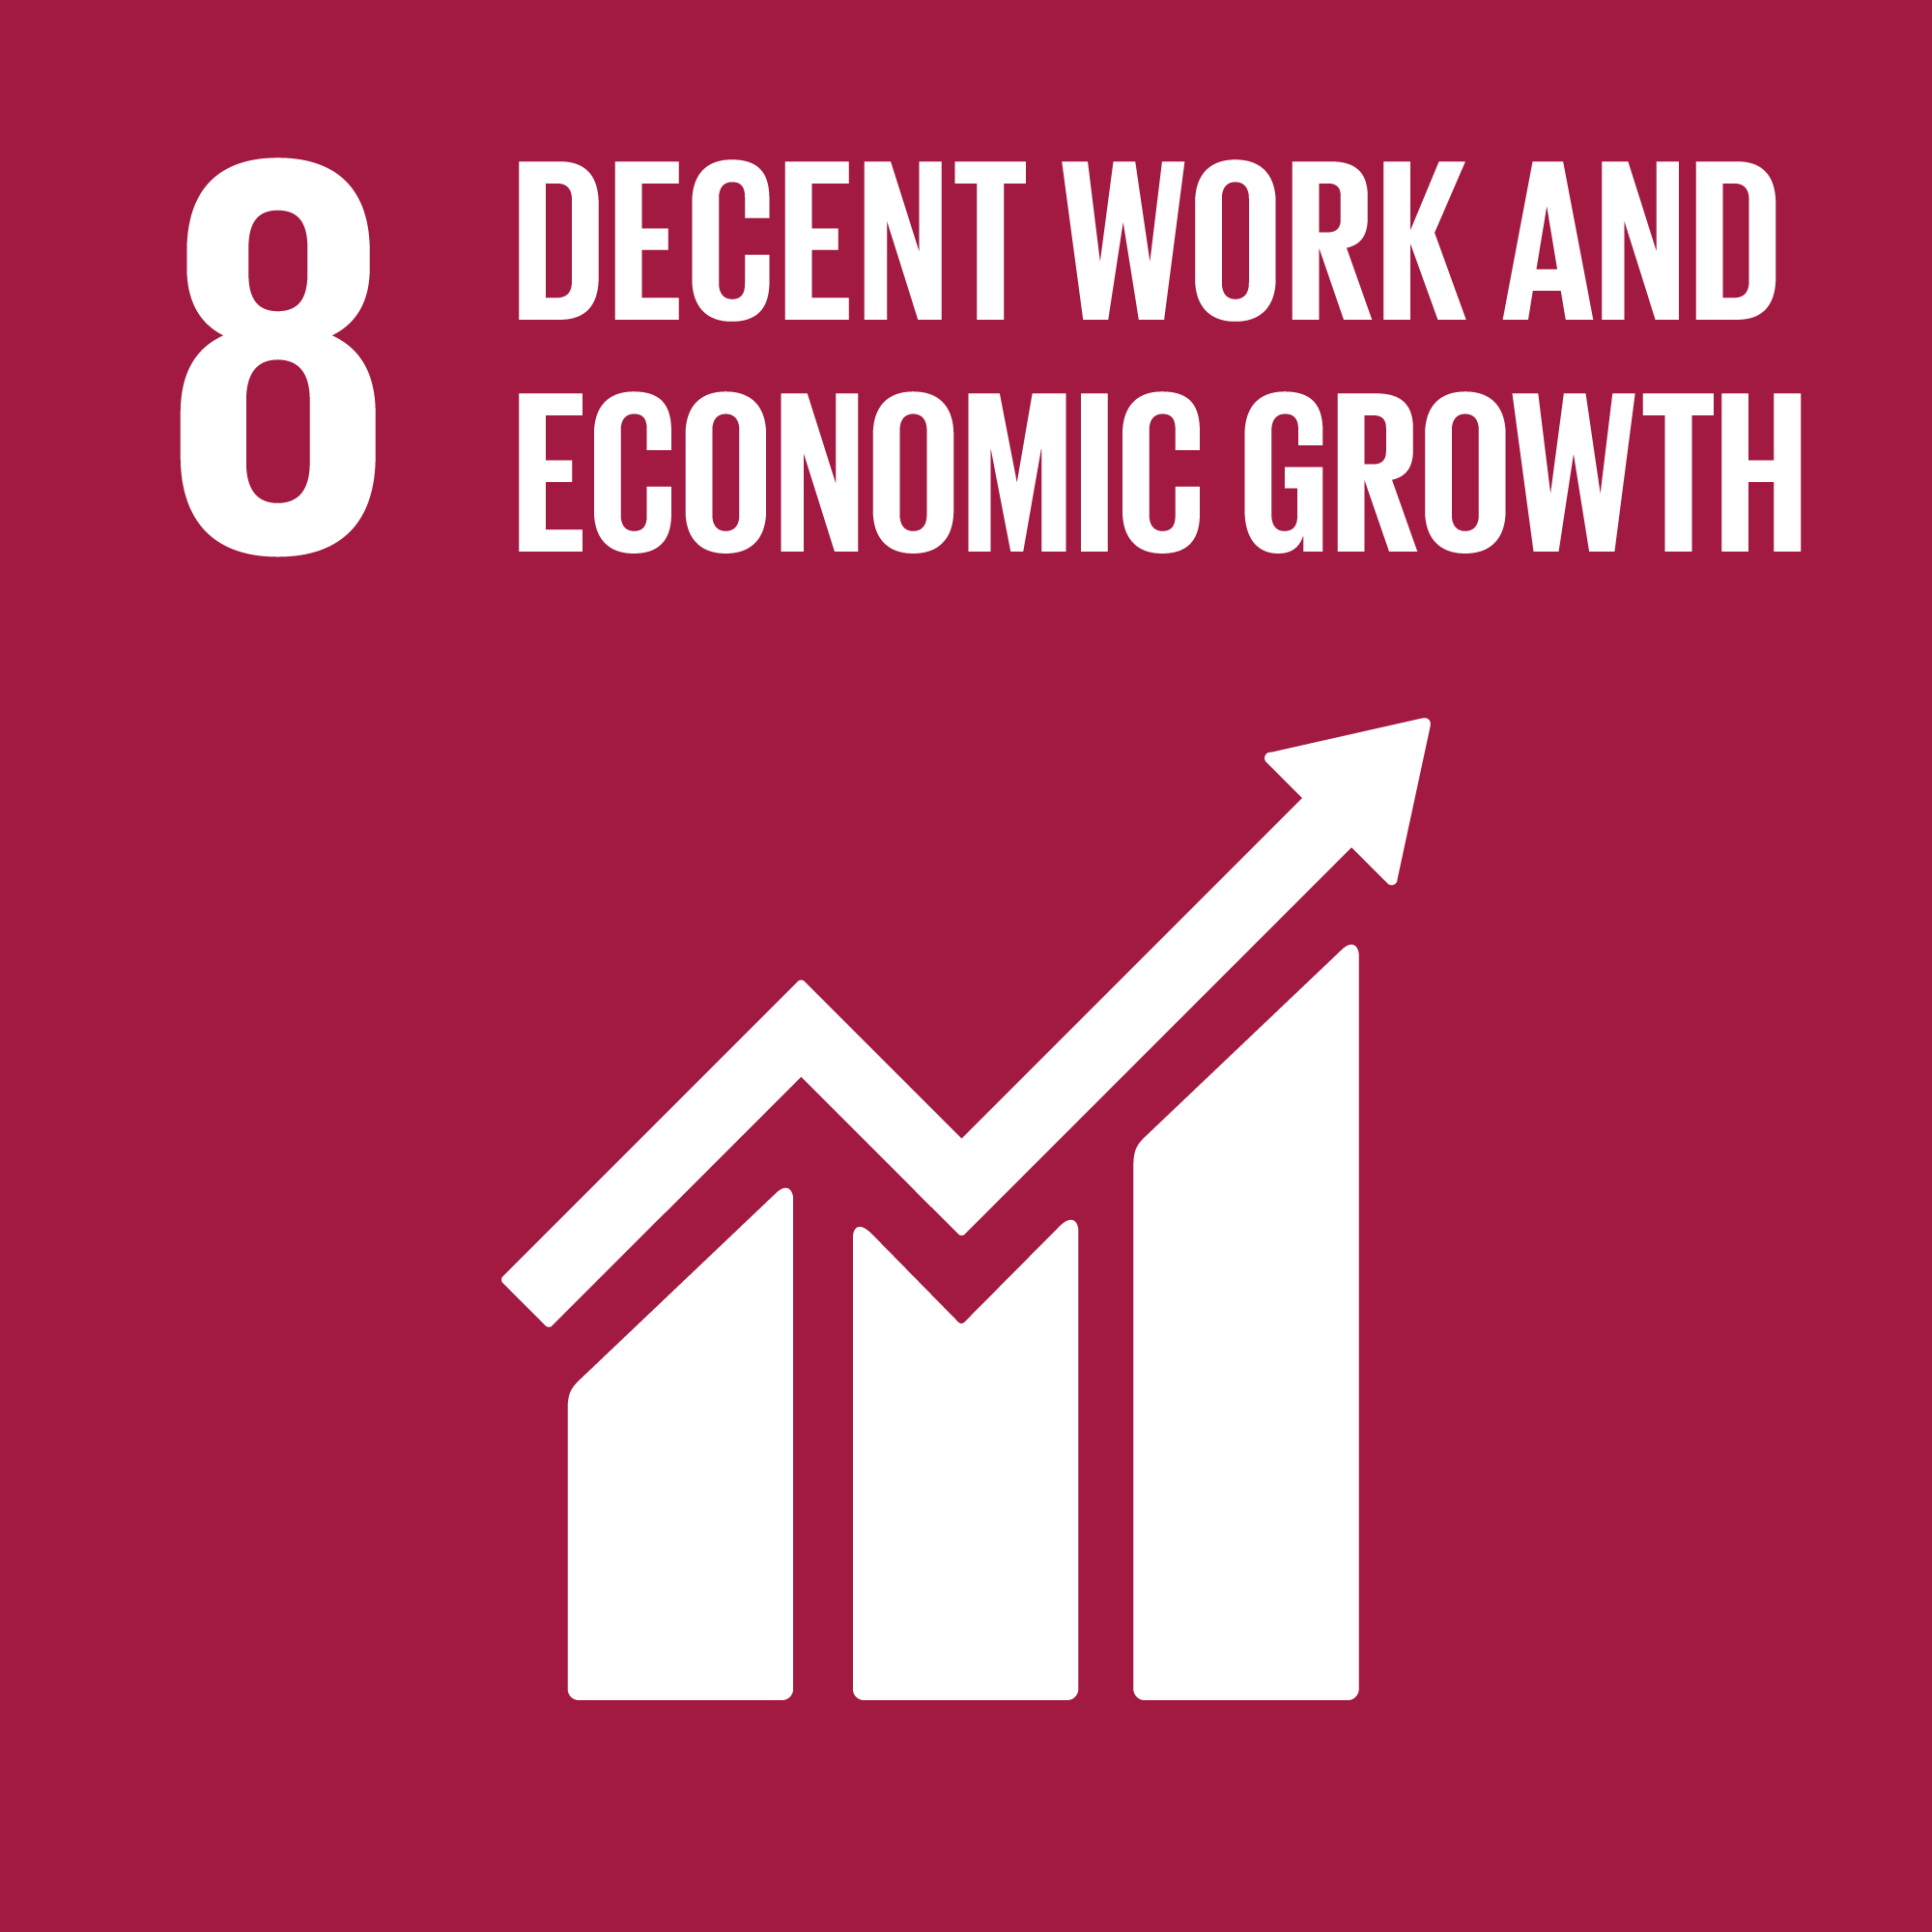 Sustainable Development Goal 8: Economy and Work